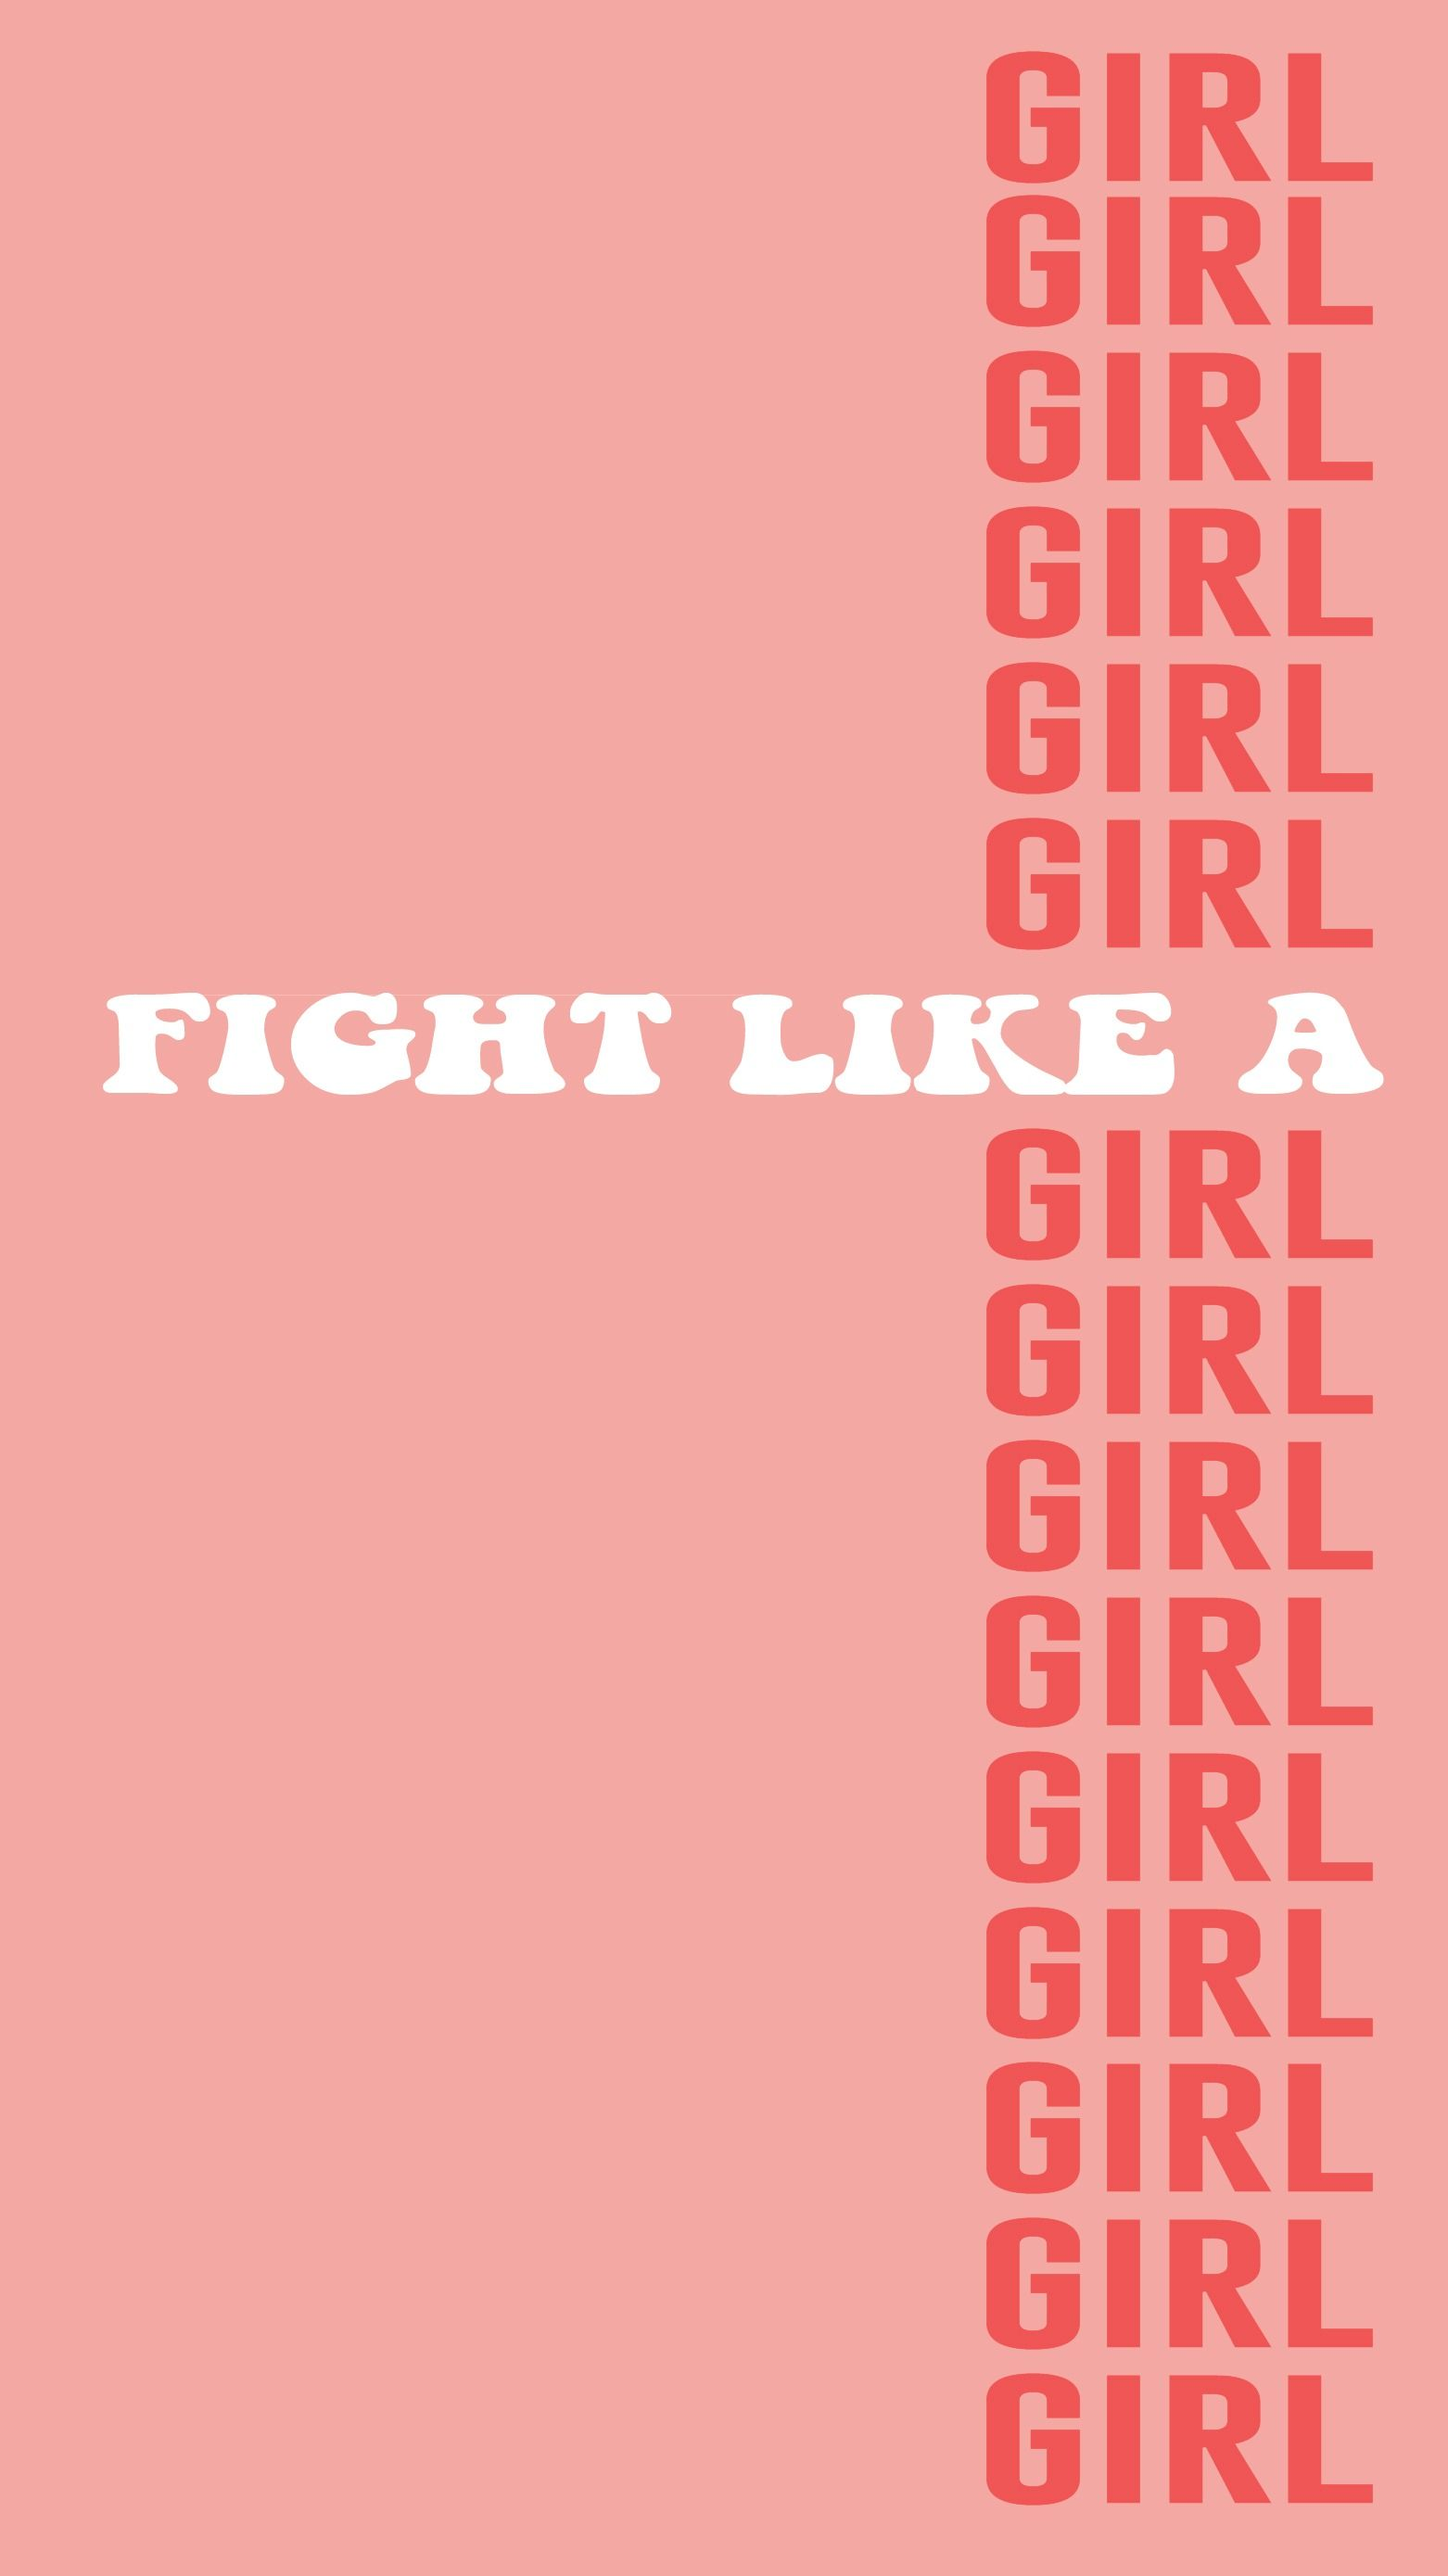 Fight Like A Girl Mobile The F Word Gift Shop Desktop Wallpaper Mobile Wallpaper Phone Wallpaper Screen Coral P Girls Be Like Fight Like A Girl Fight